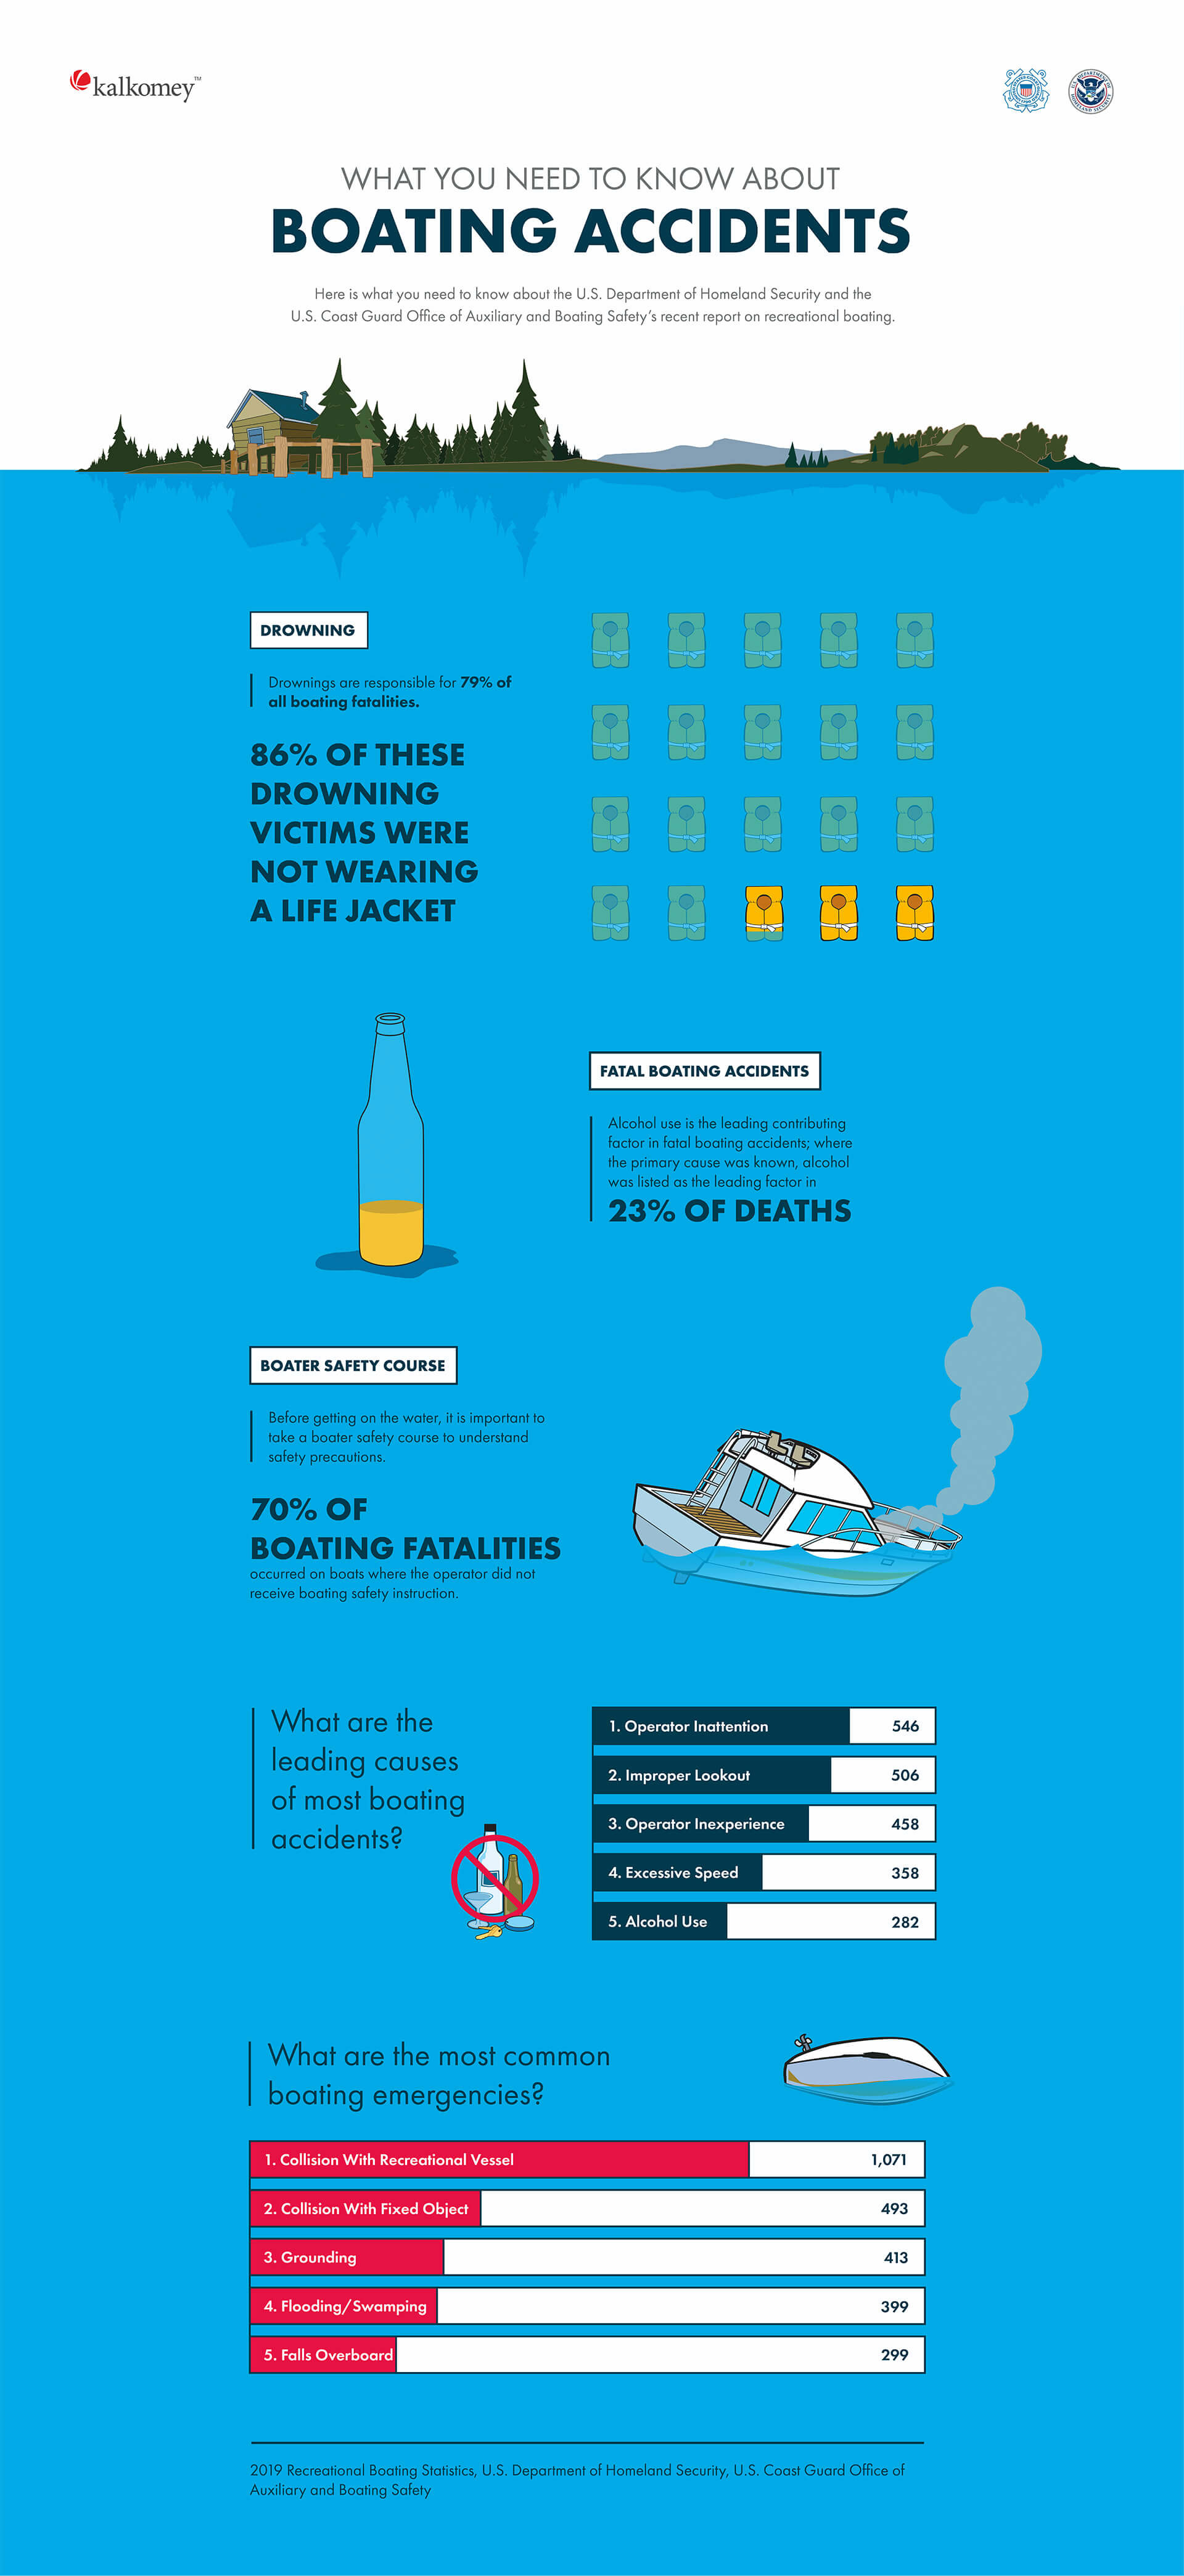 Infographic: common causes of boat accidents